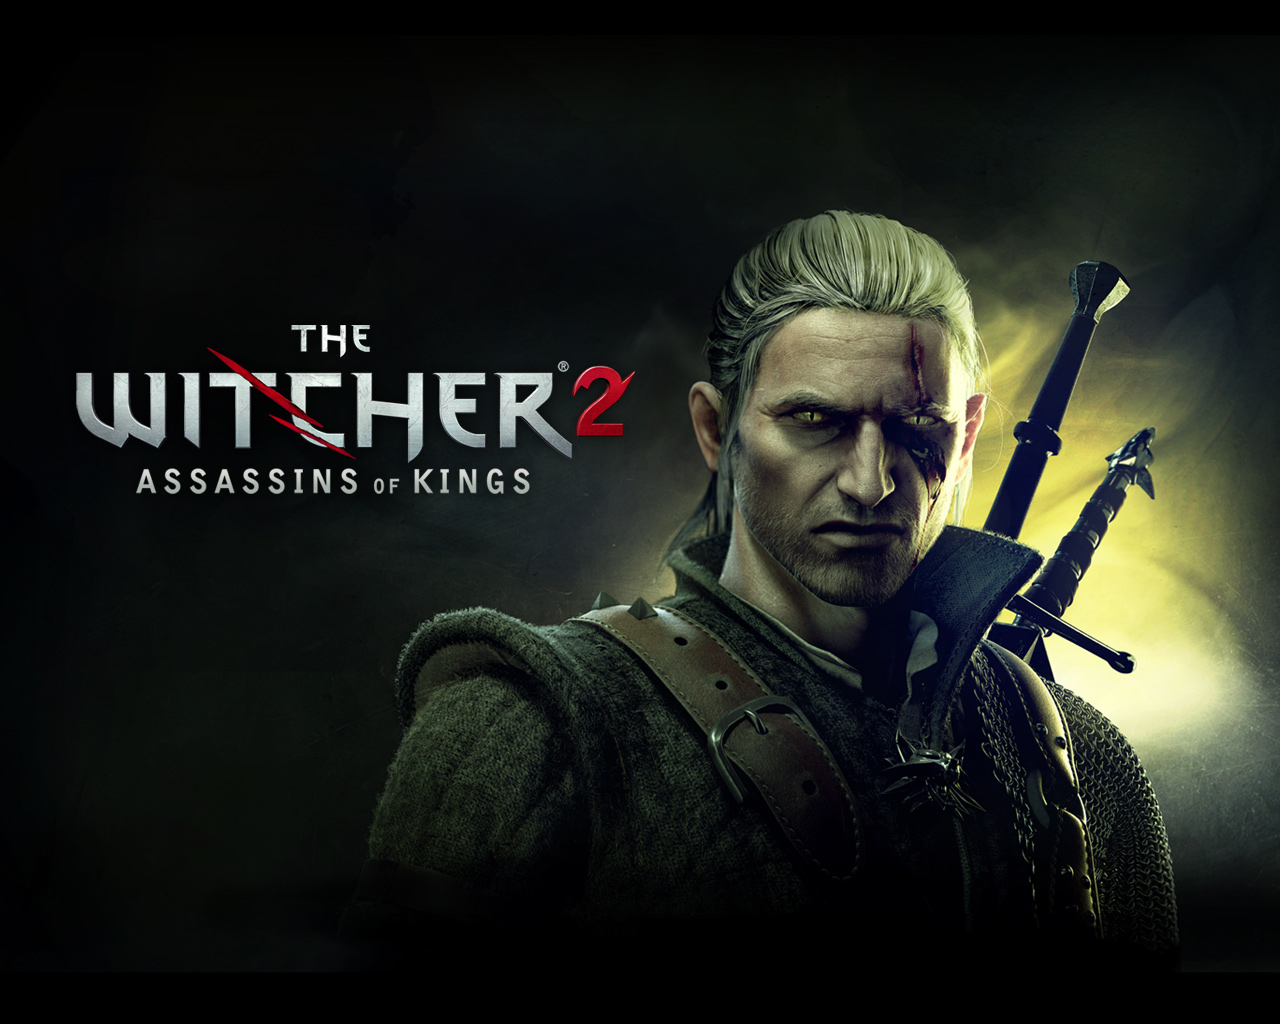 The Witcher 2 wallpaper 4